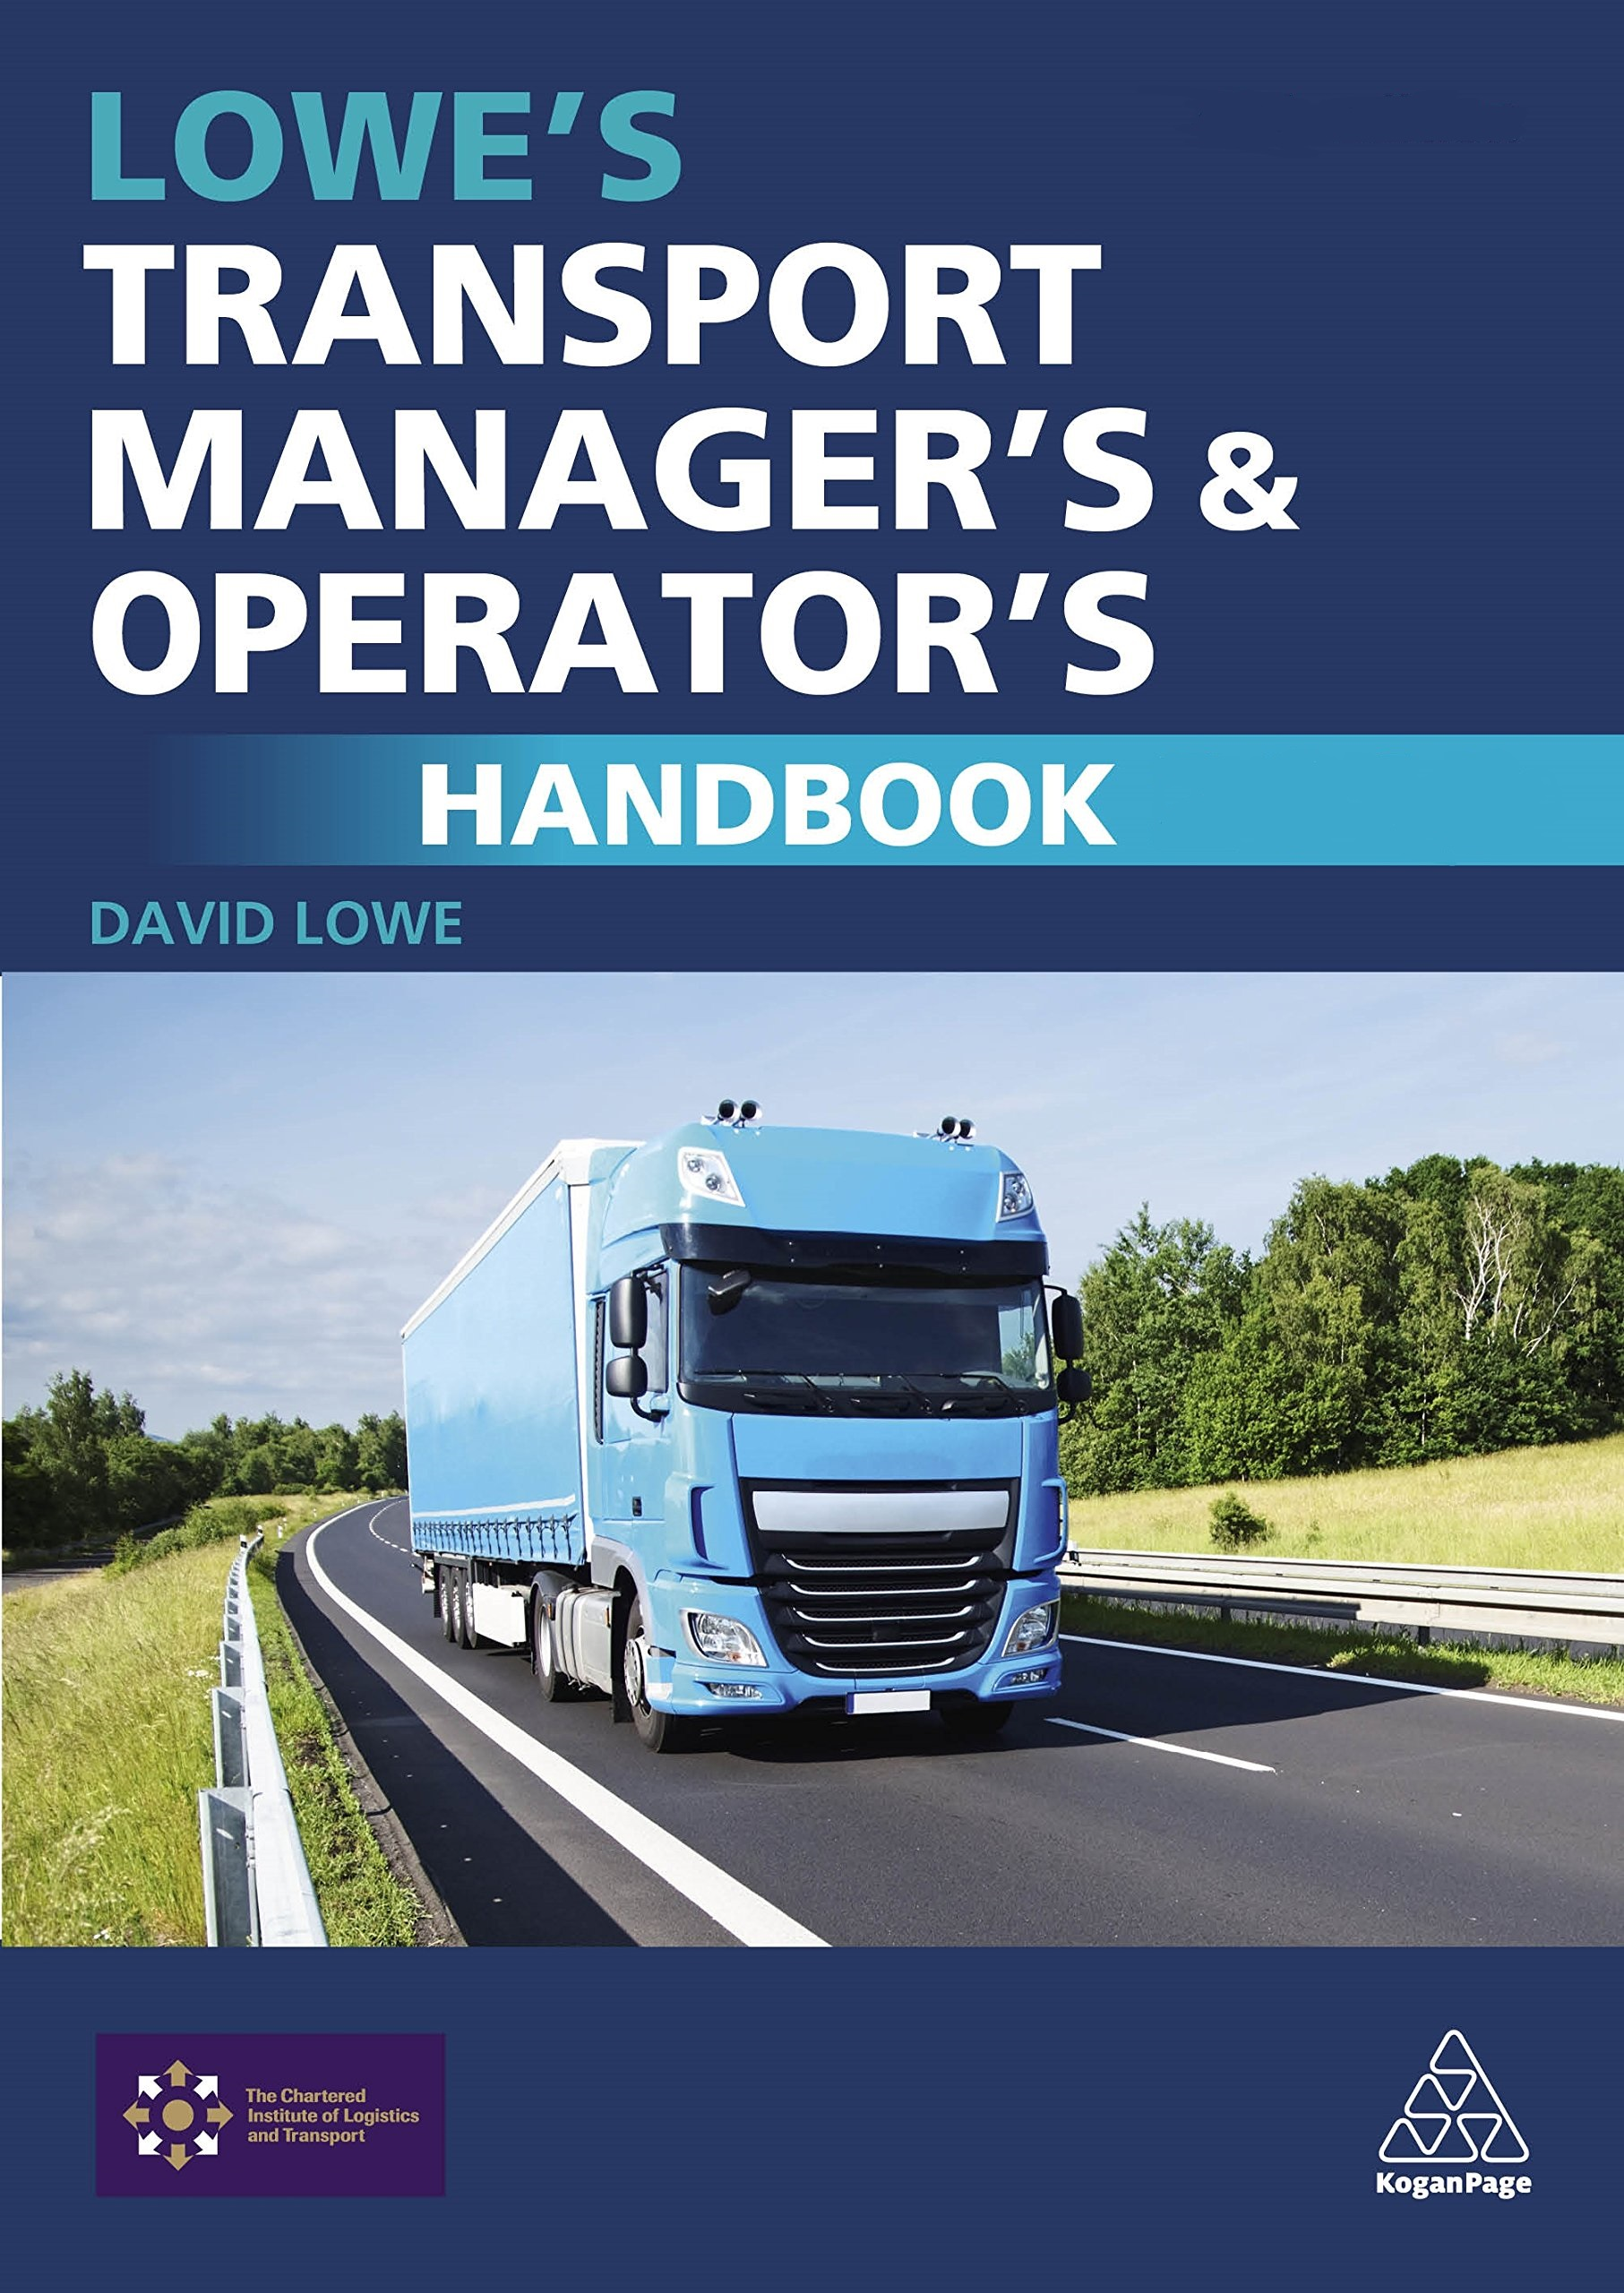 Lowe's Transport Manager's & Operators Handbook 2016